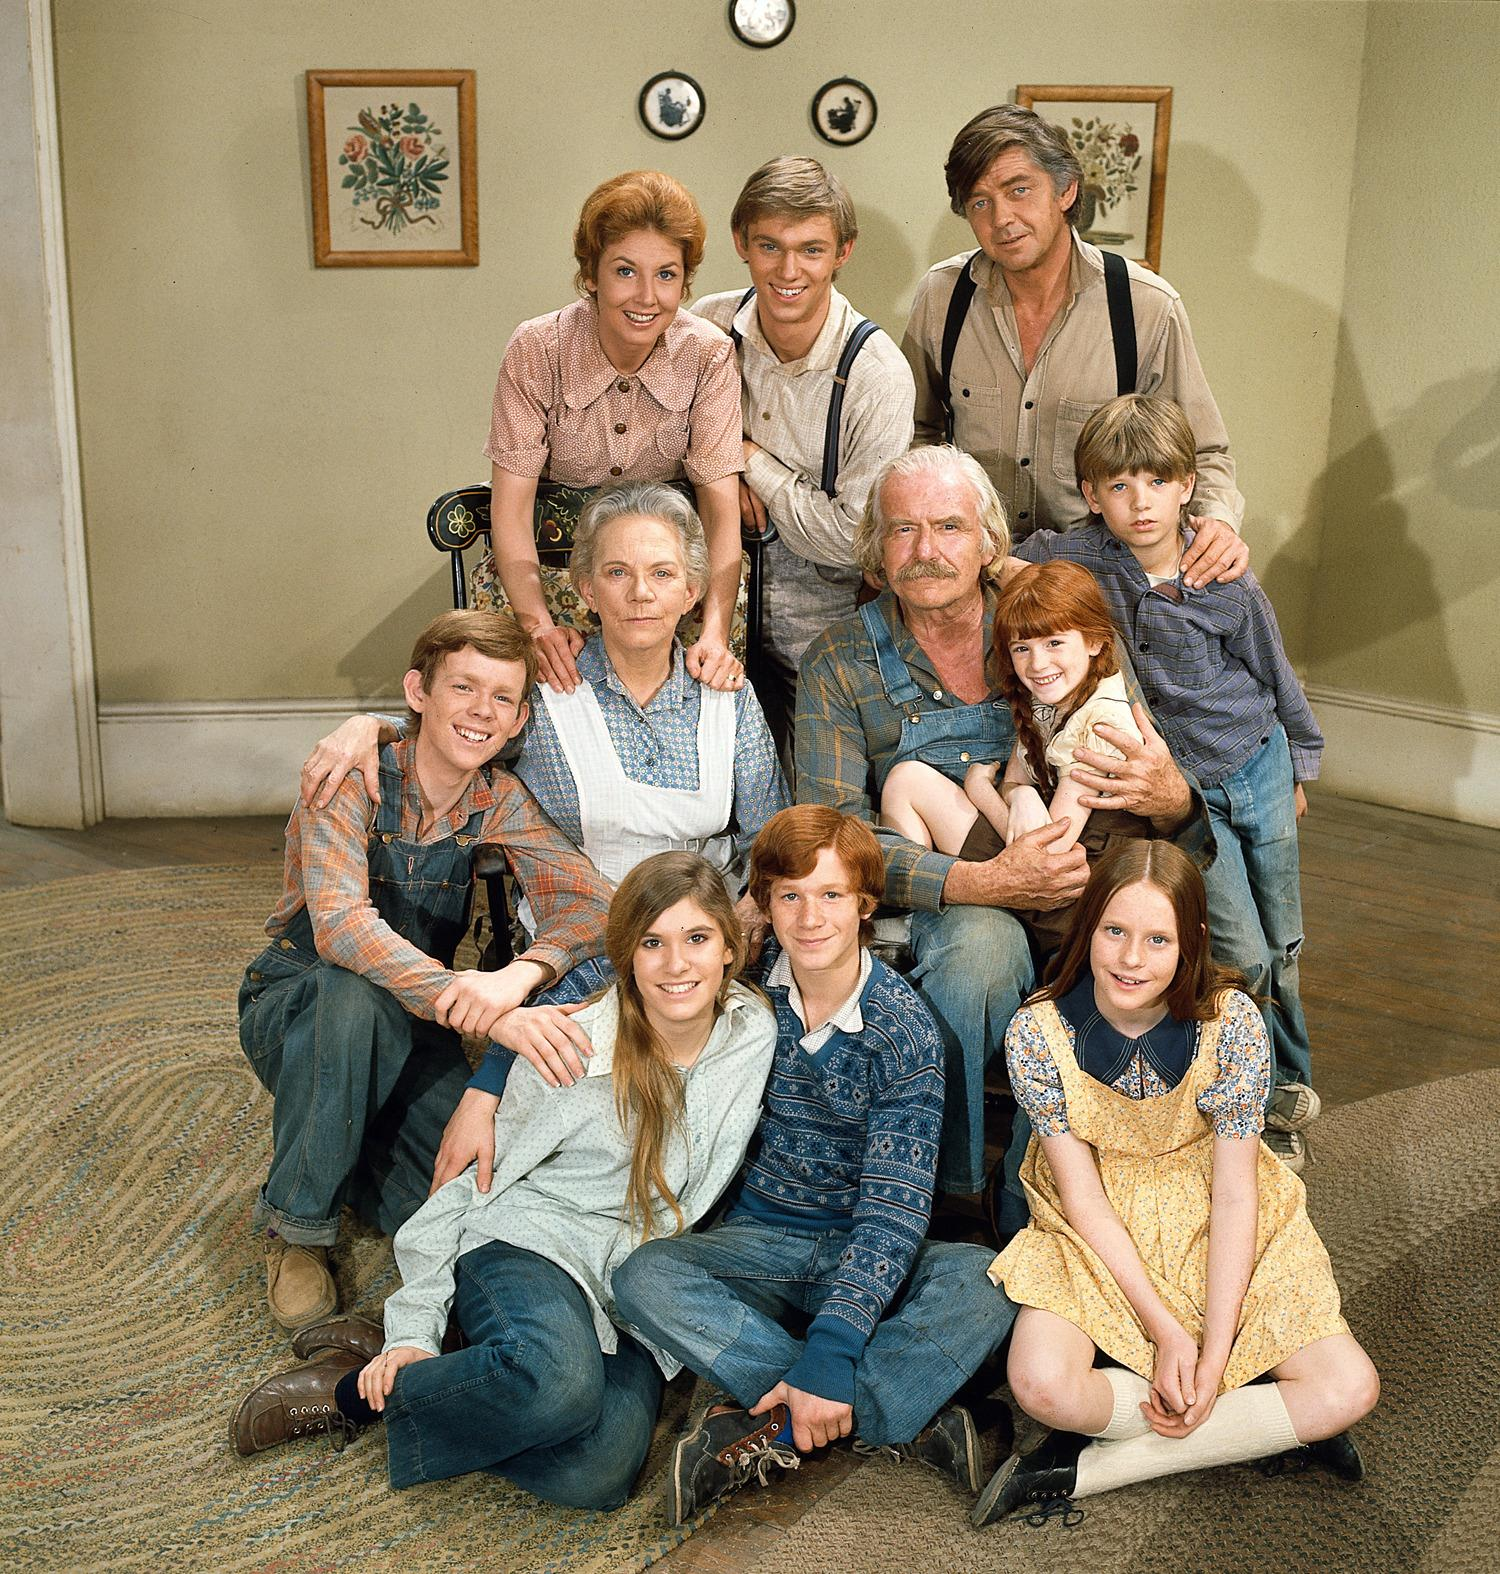 The cast of the hit television series 'The Waltons' poses for a promotional photo, 1972.